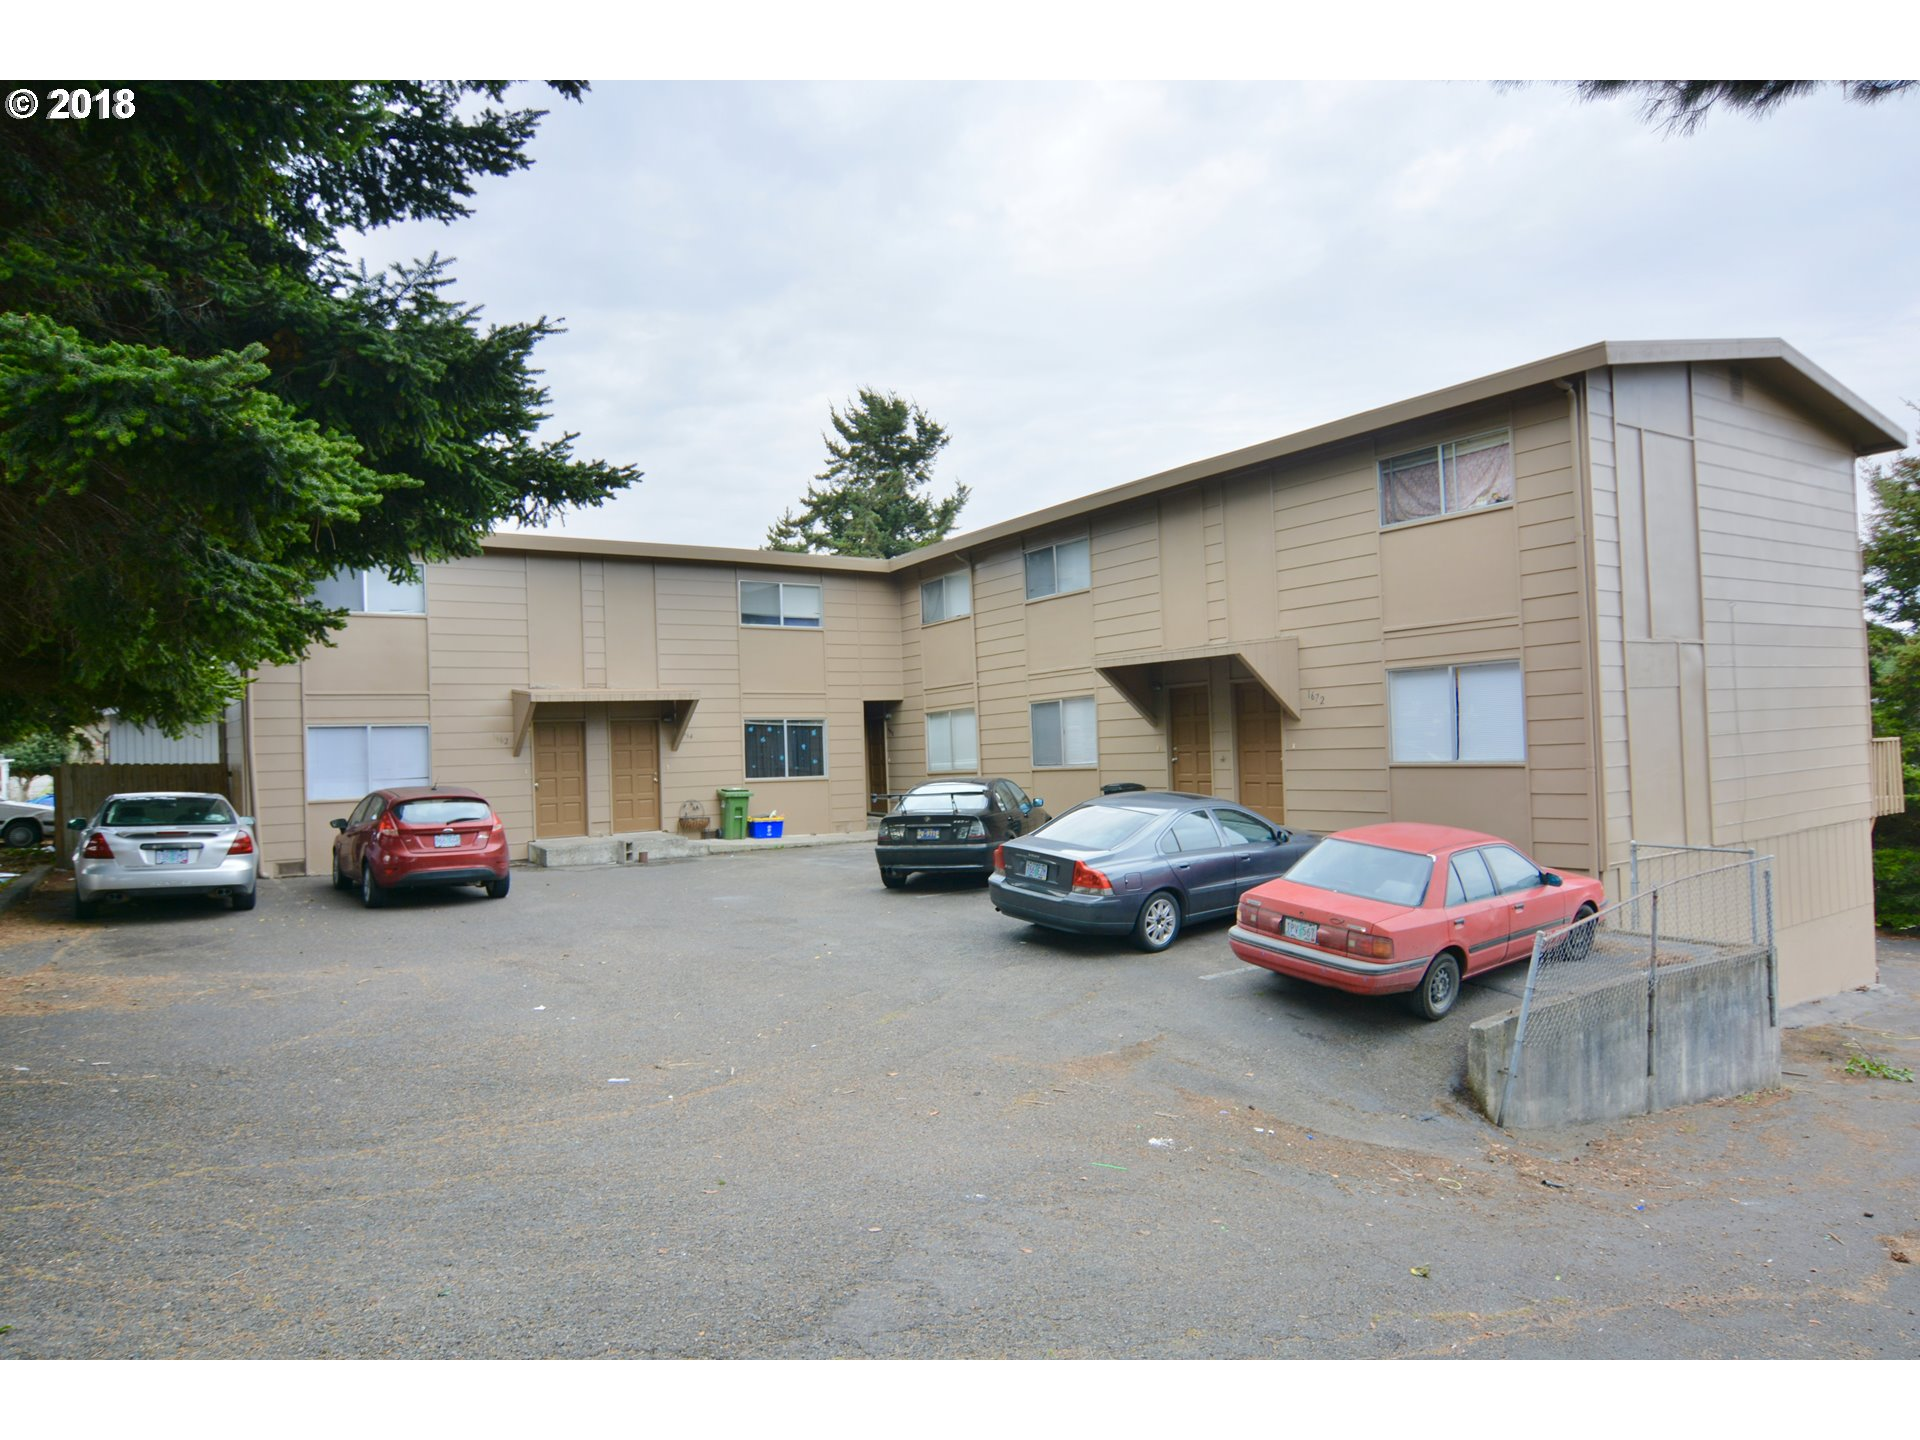 1662 MCPHERSON North Bend, OR 97459 - MLS #: 18349792